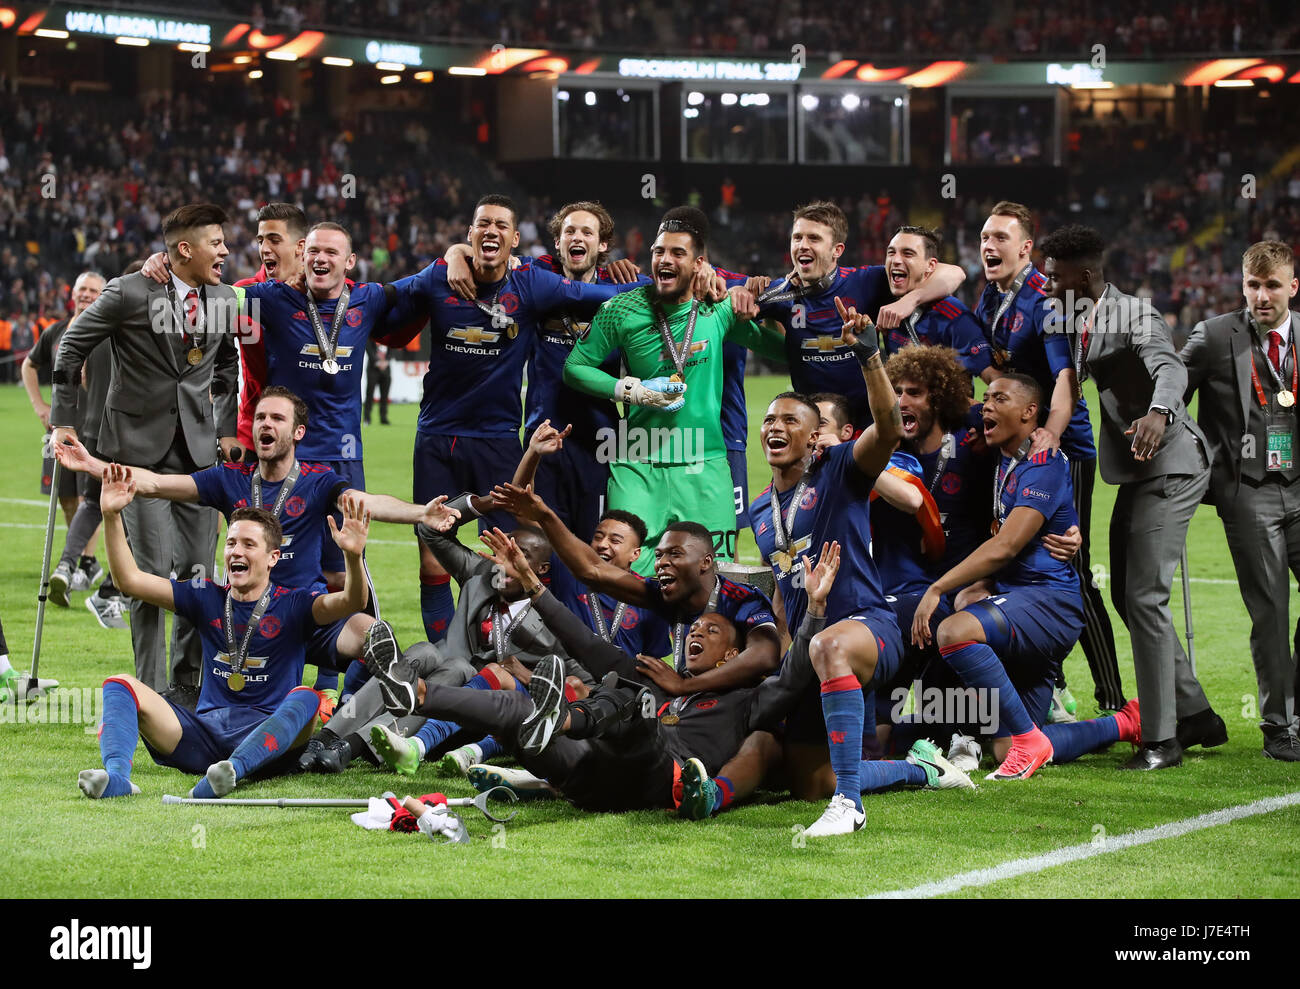 manchester united players celebrate winning the uefa europa league stock photo alamy https www alamy com stock photo manchester united players celebrate winning the uefa europa league 142296689 html